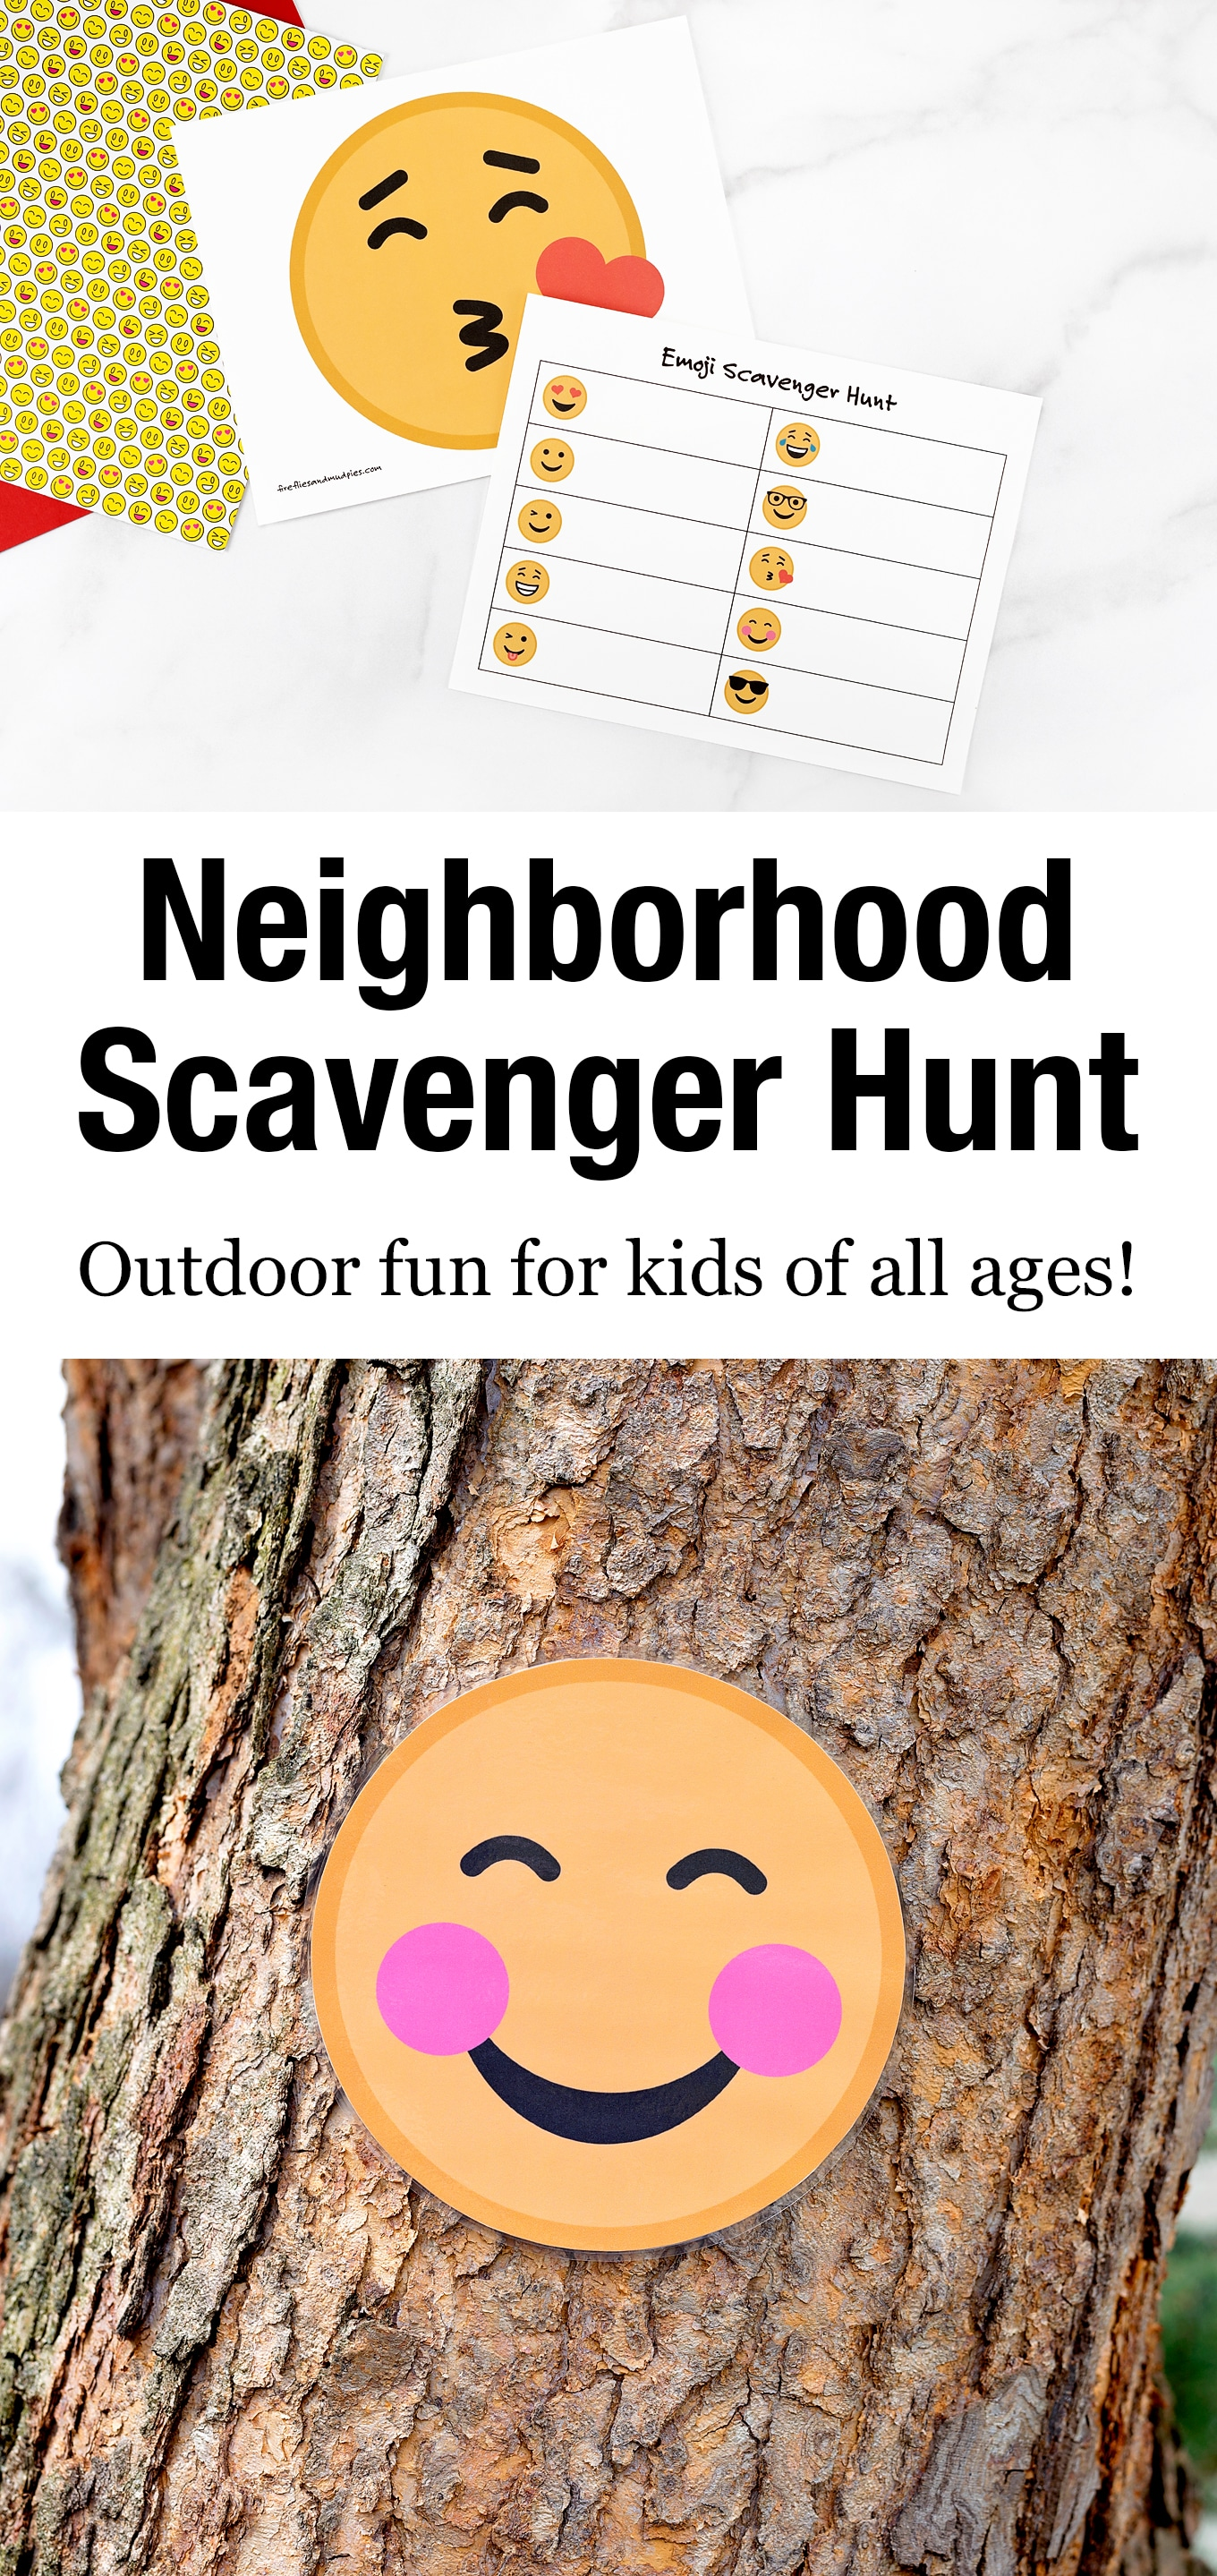 Learn how to host a fun neighborhood scavenger hunt—a creative way to get kids active, meet new people, and increase feelings of joy and community! #neighborhoodscavengerhunt #scavengerhunt via @firefliesandmudpies